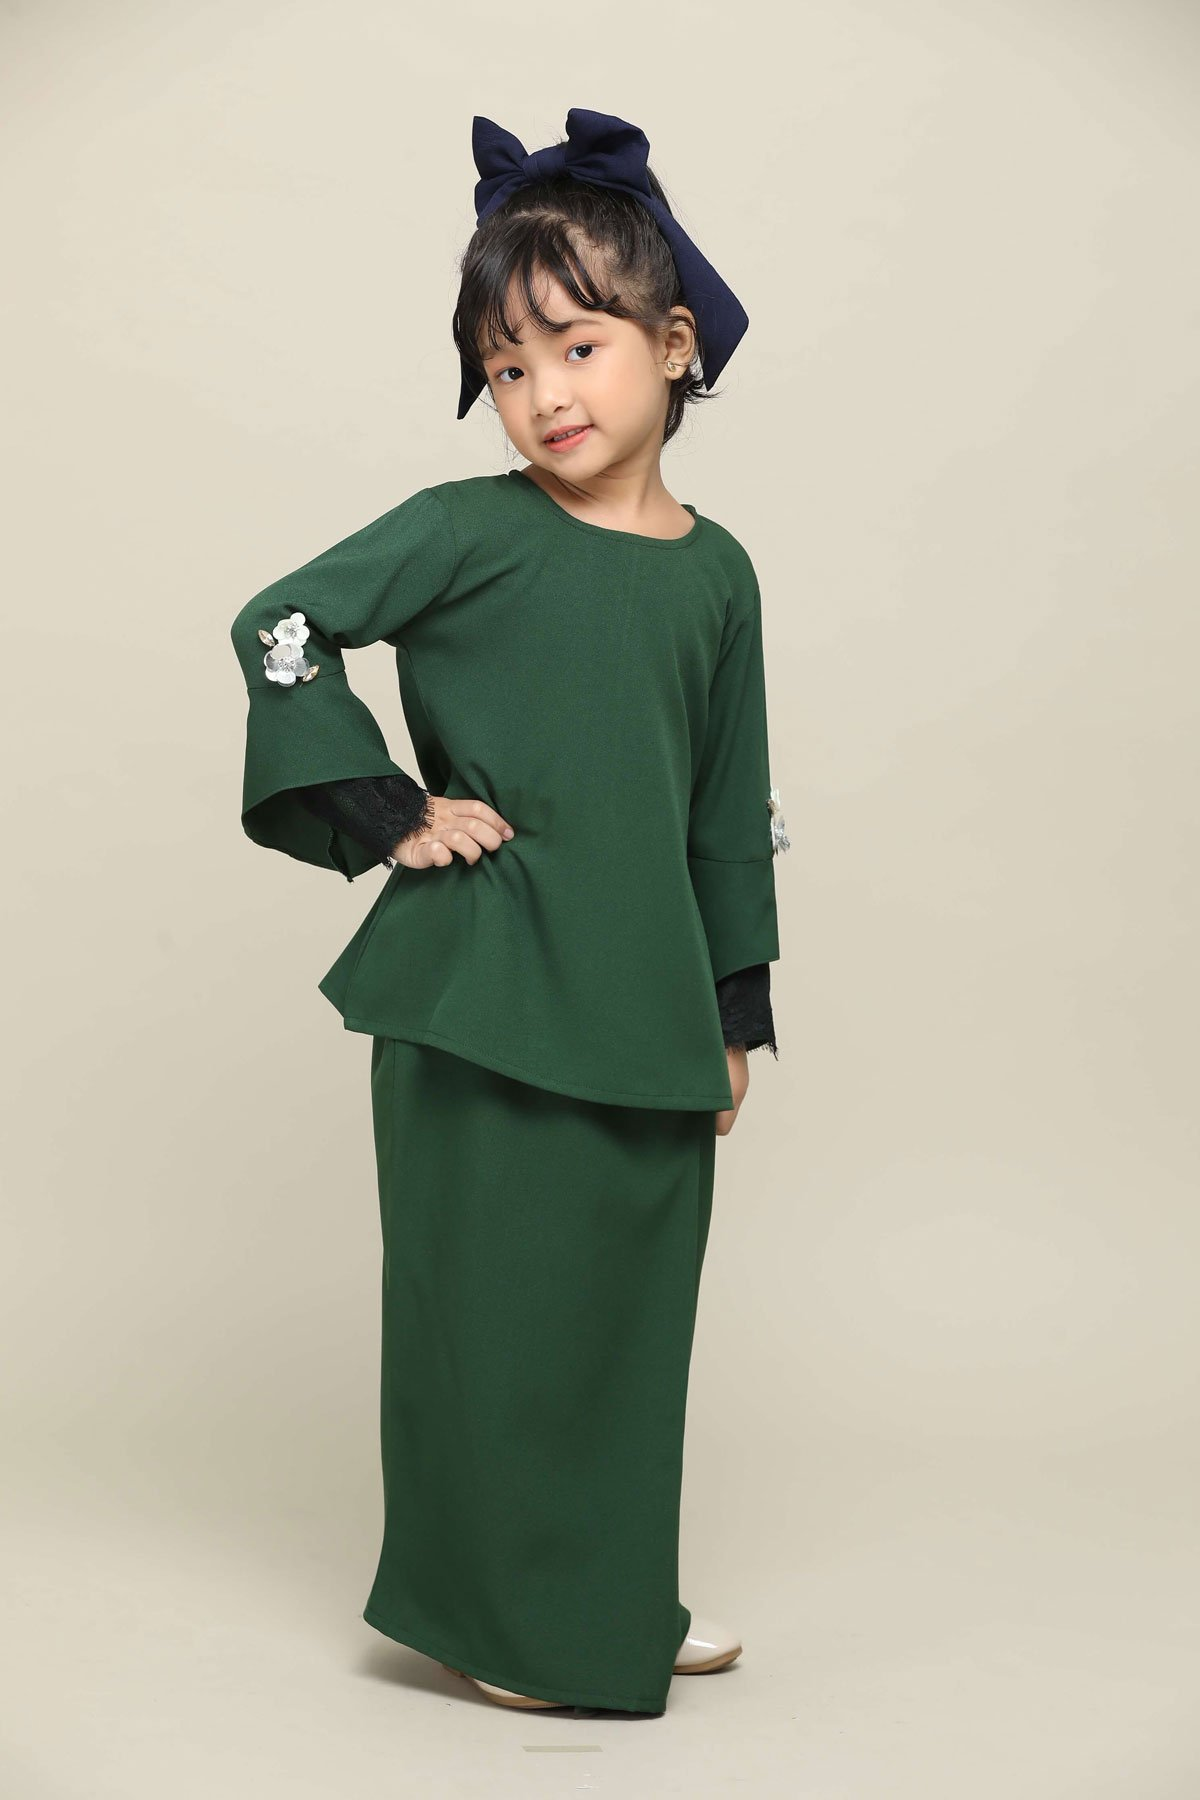 Kurik Kundi Kids Emerald Green